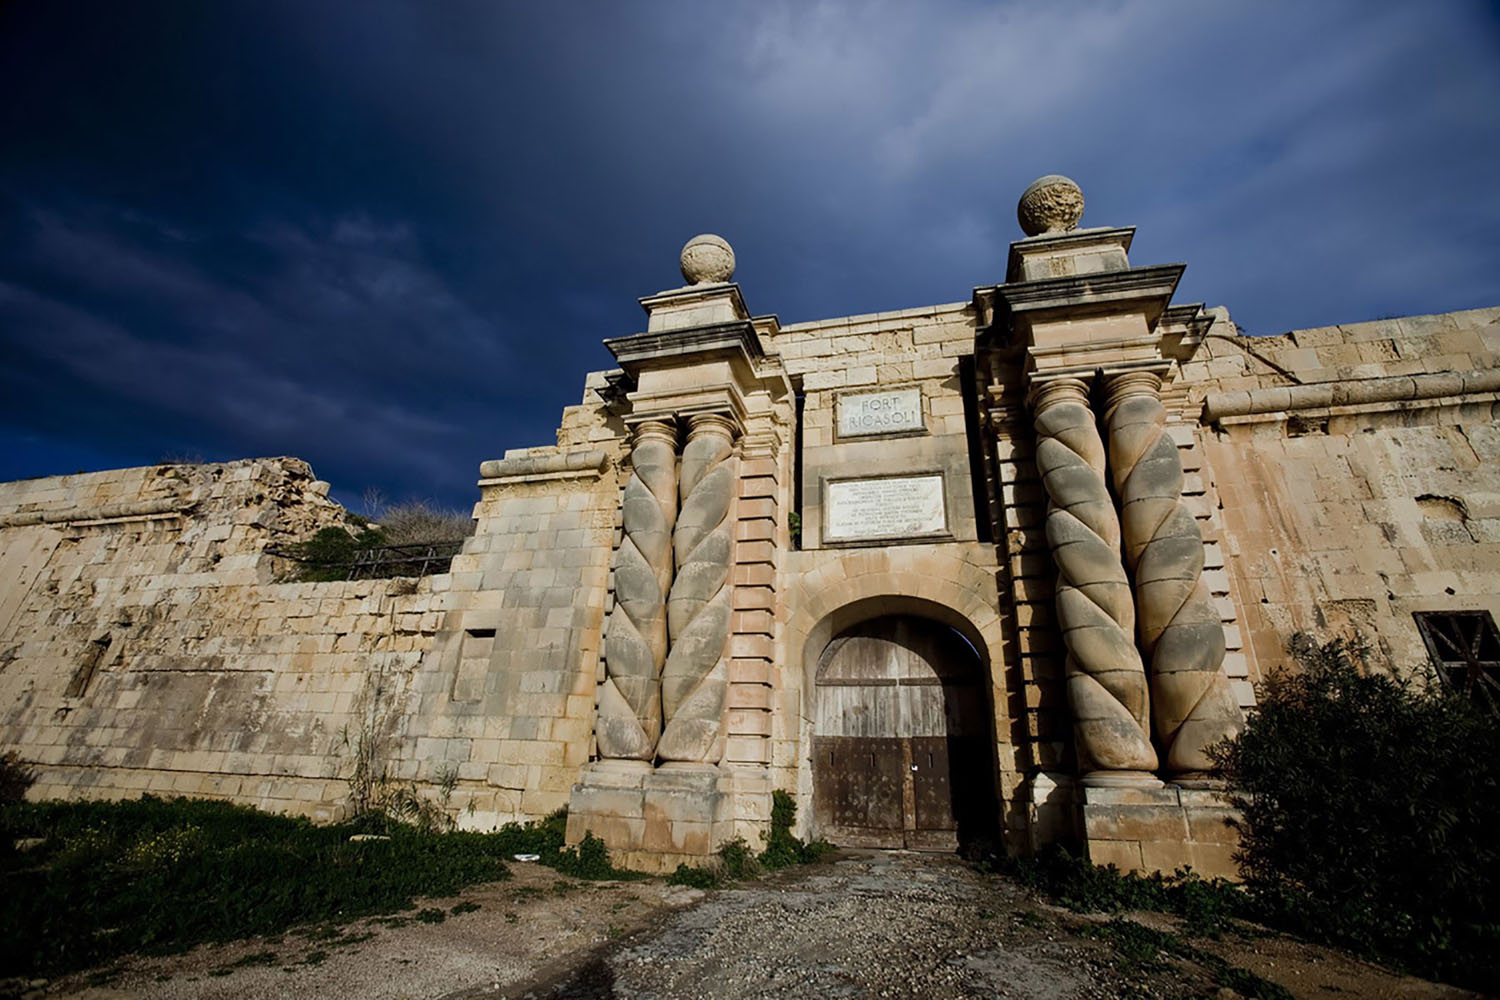 The Entrance to Fort Ricasoli in Valletta, Malta